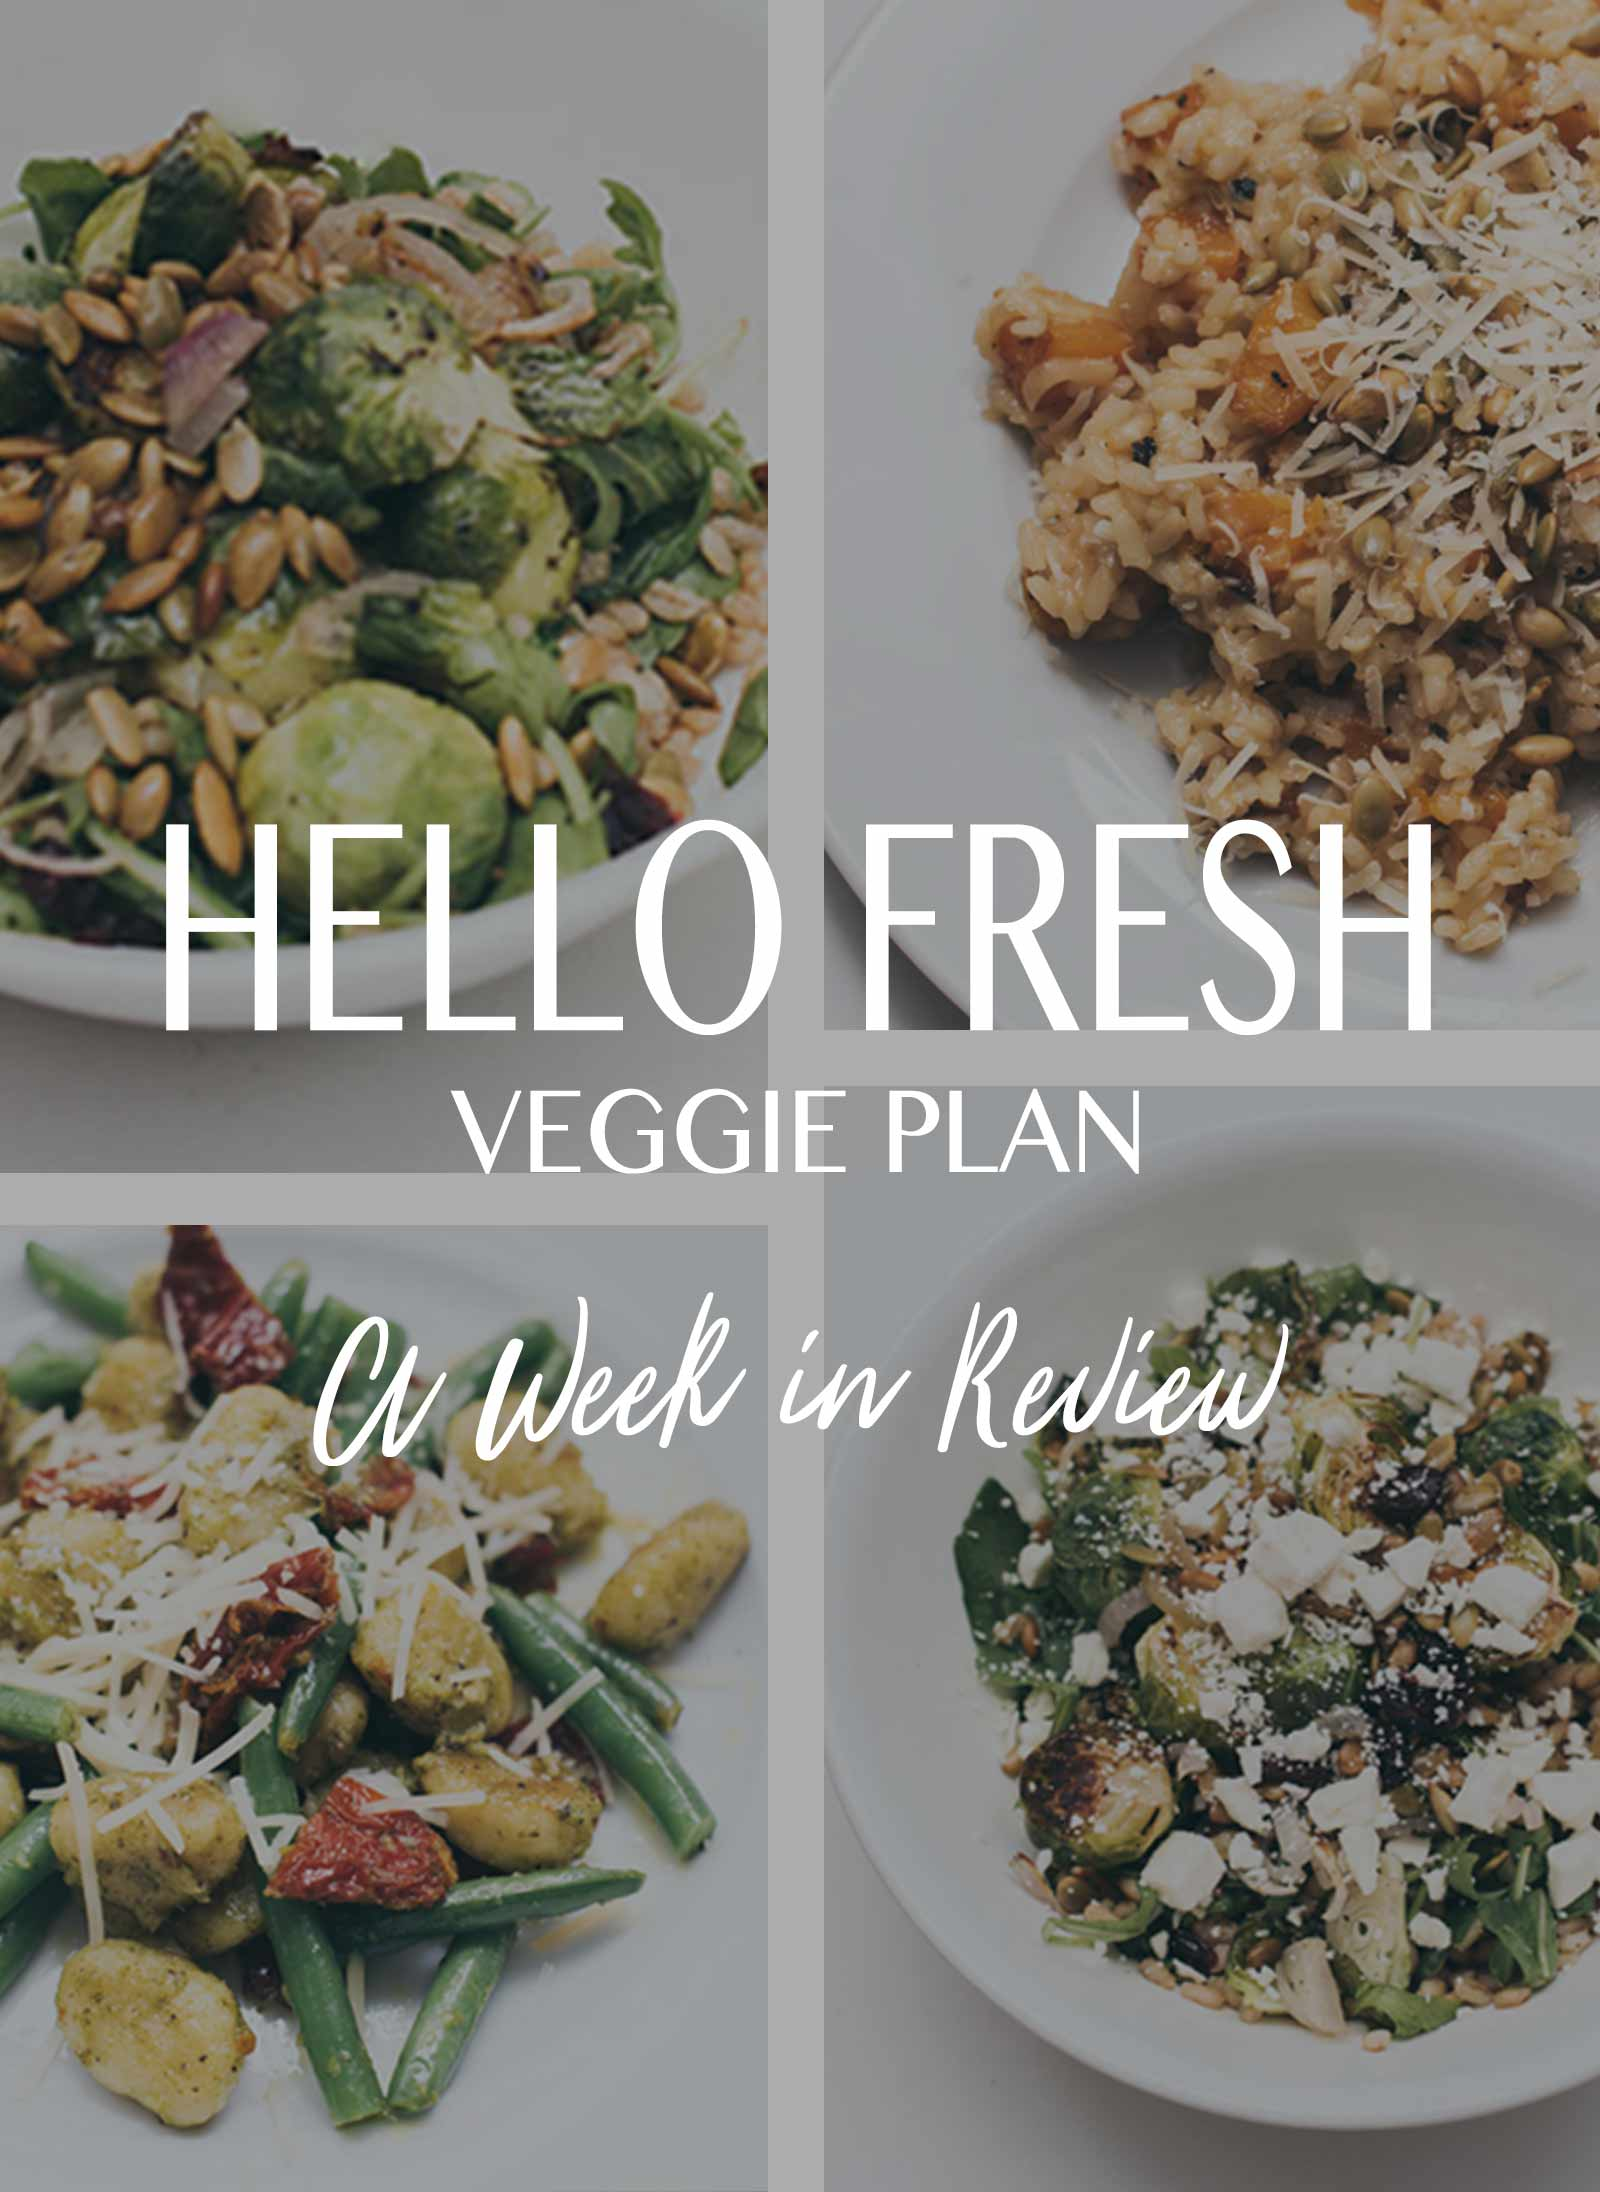 Meal Kit Delivery Service Hellofresh  Inches Size